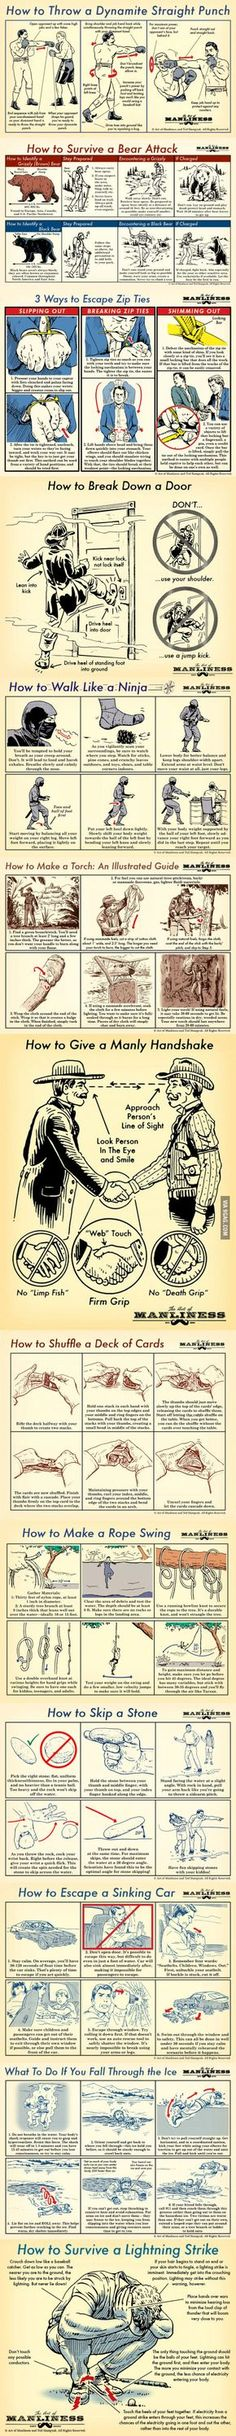 How To. ..The Act of Manliness